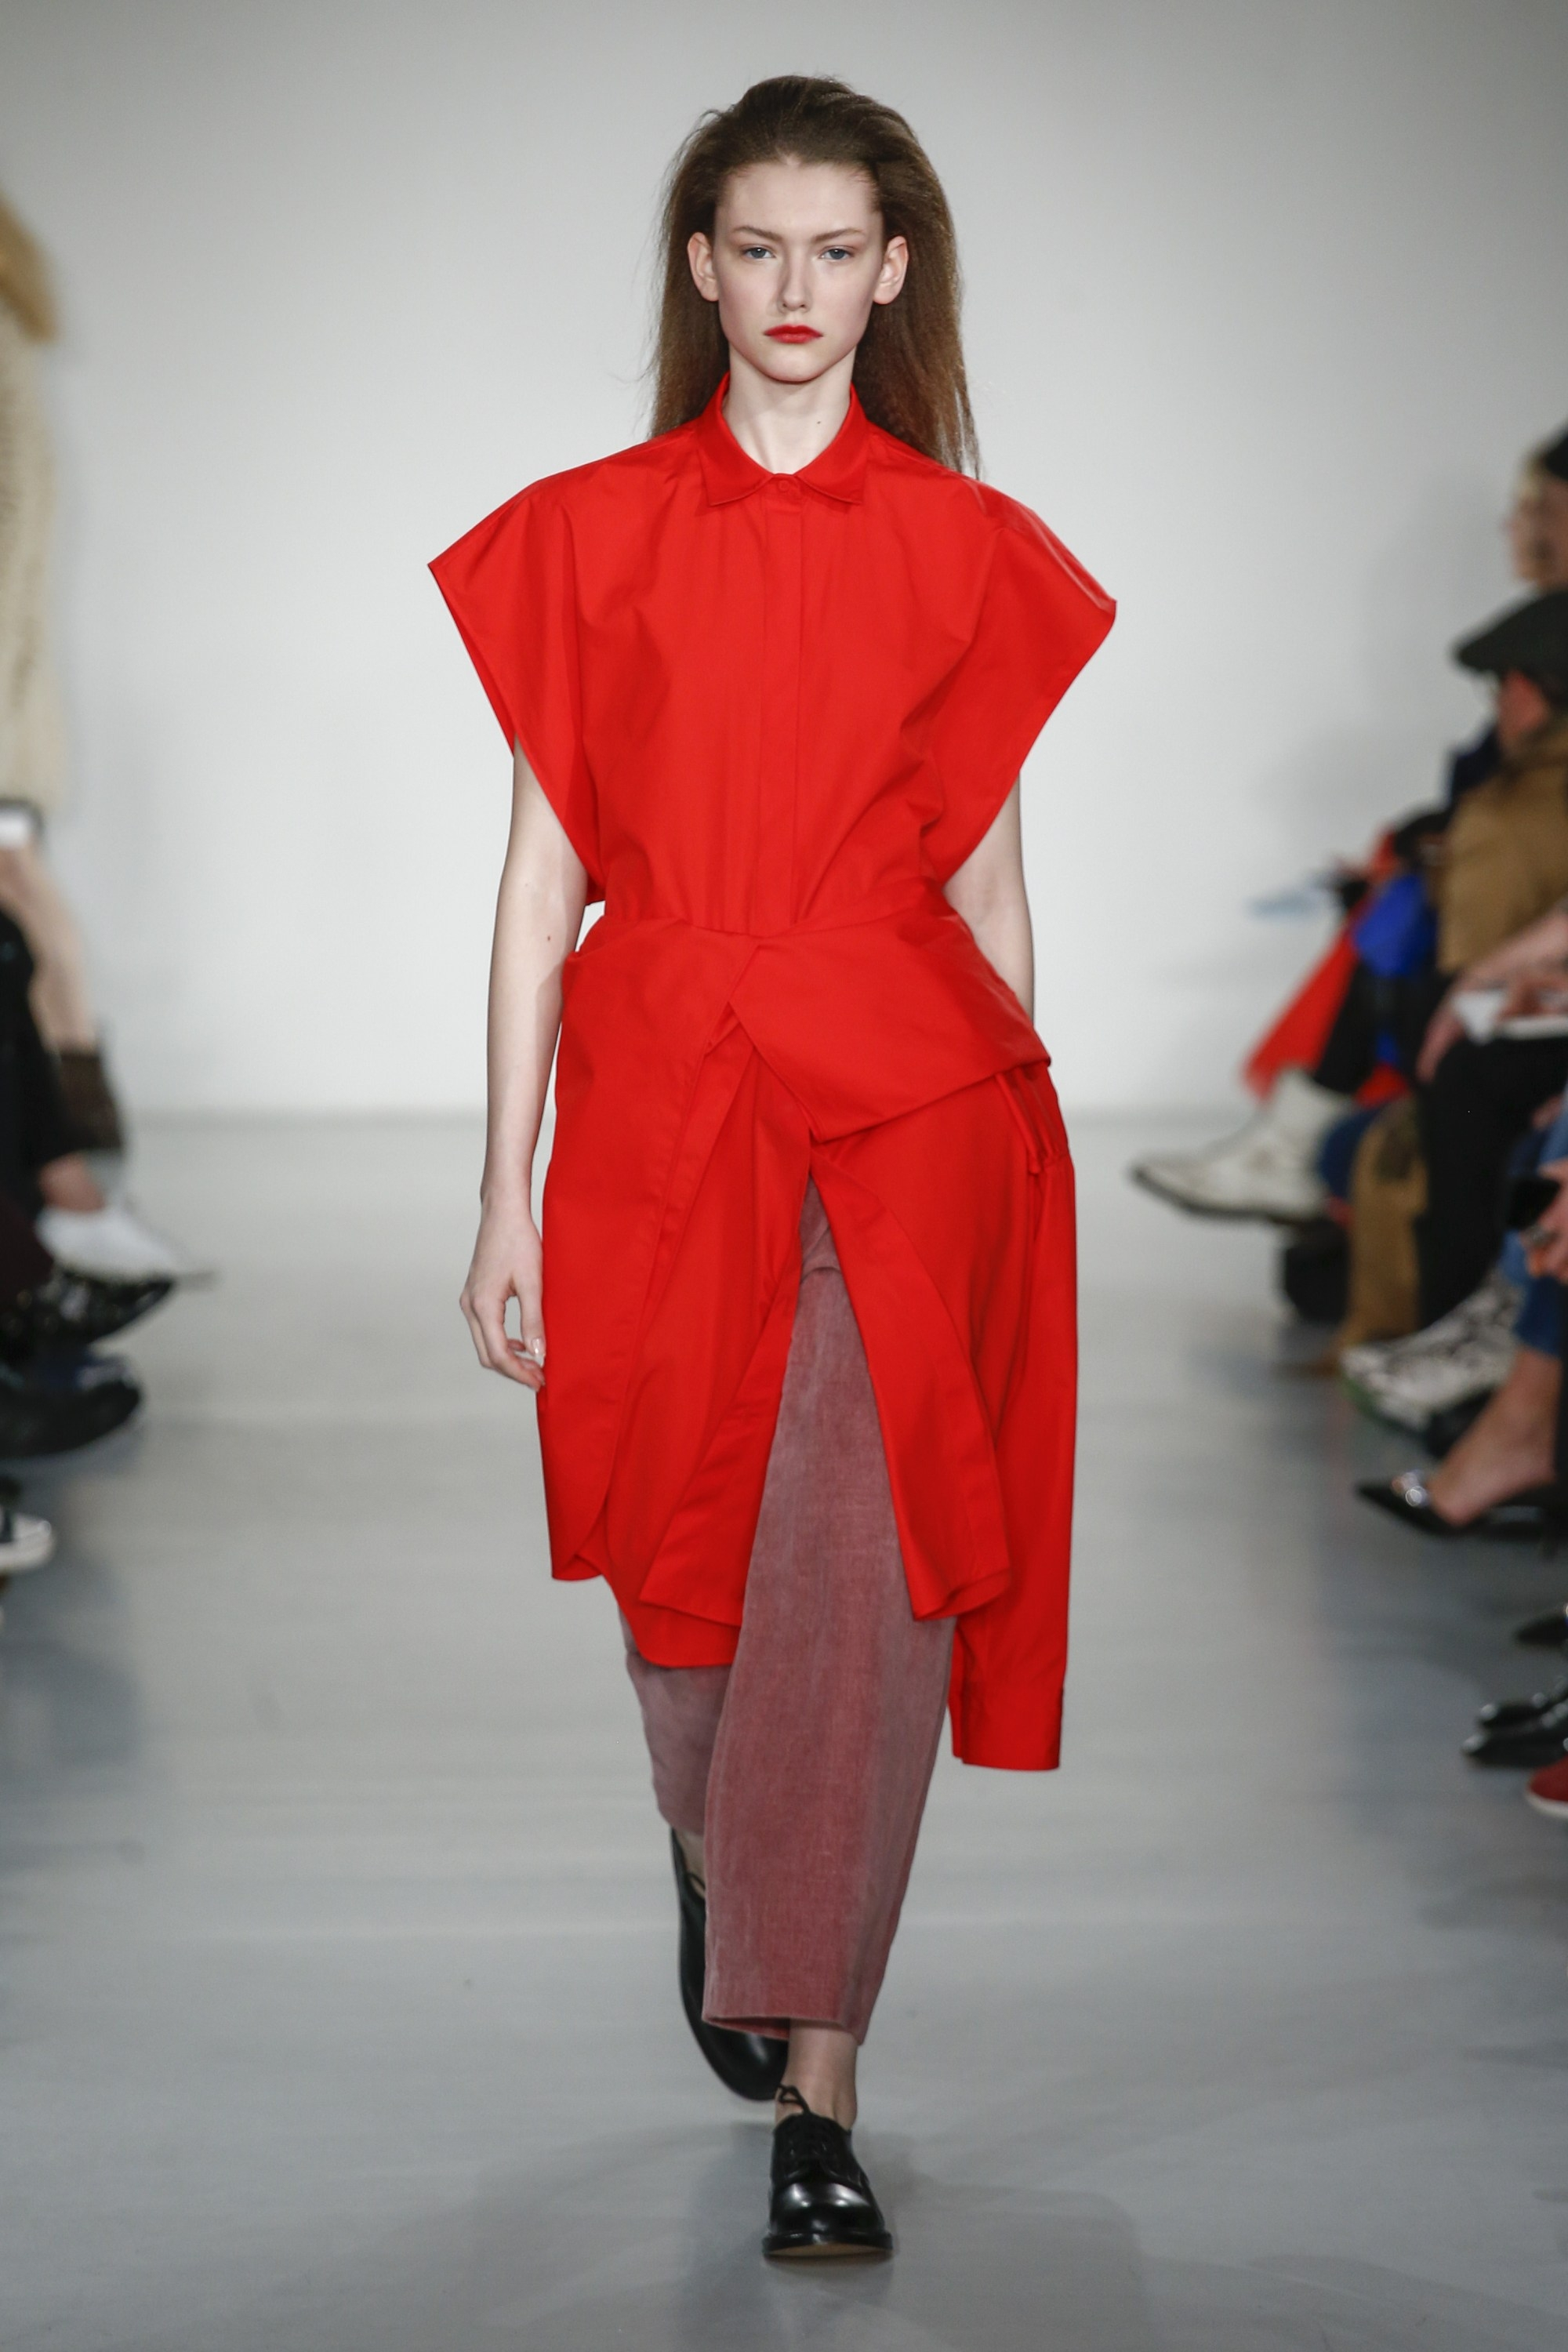 A/W 17 Red